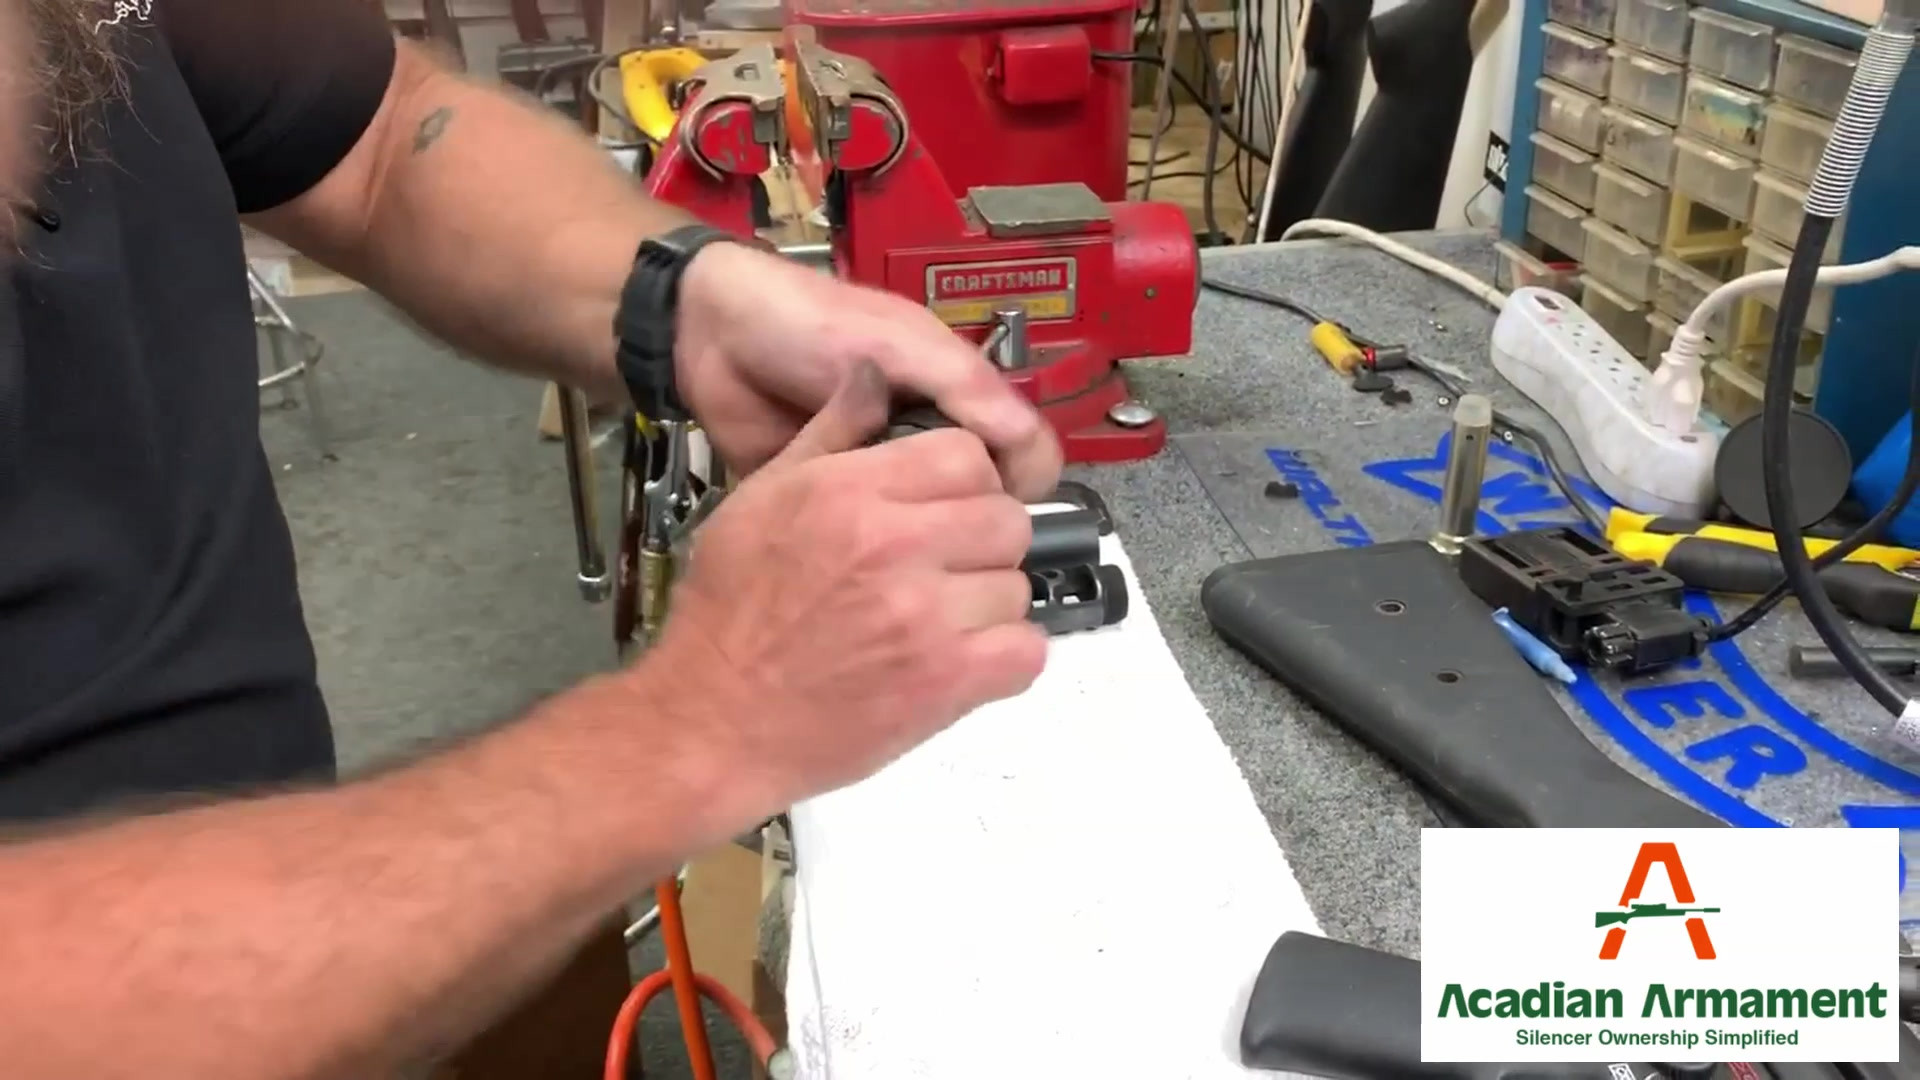 D9 disassembly and reassembly - A 90-second tutorial